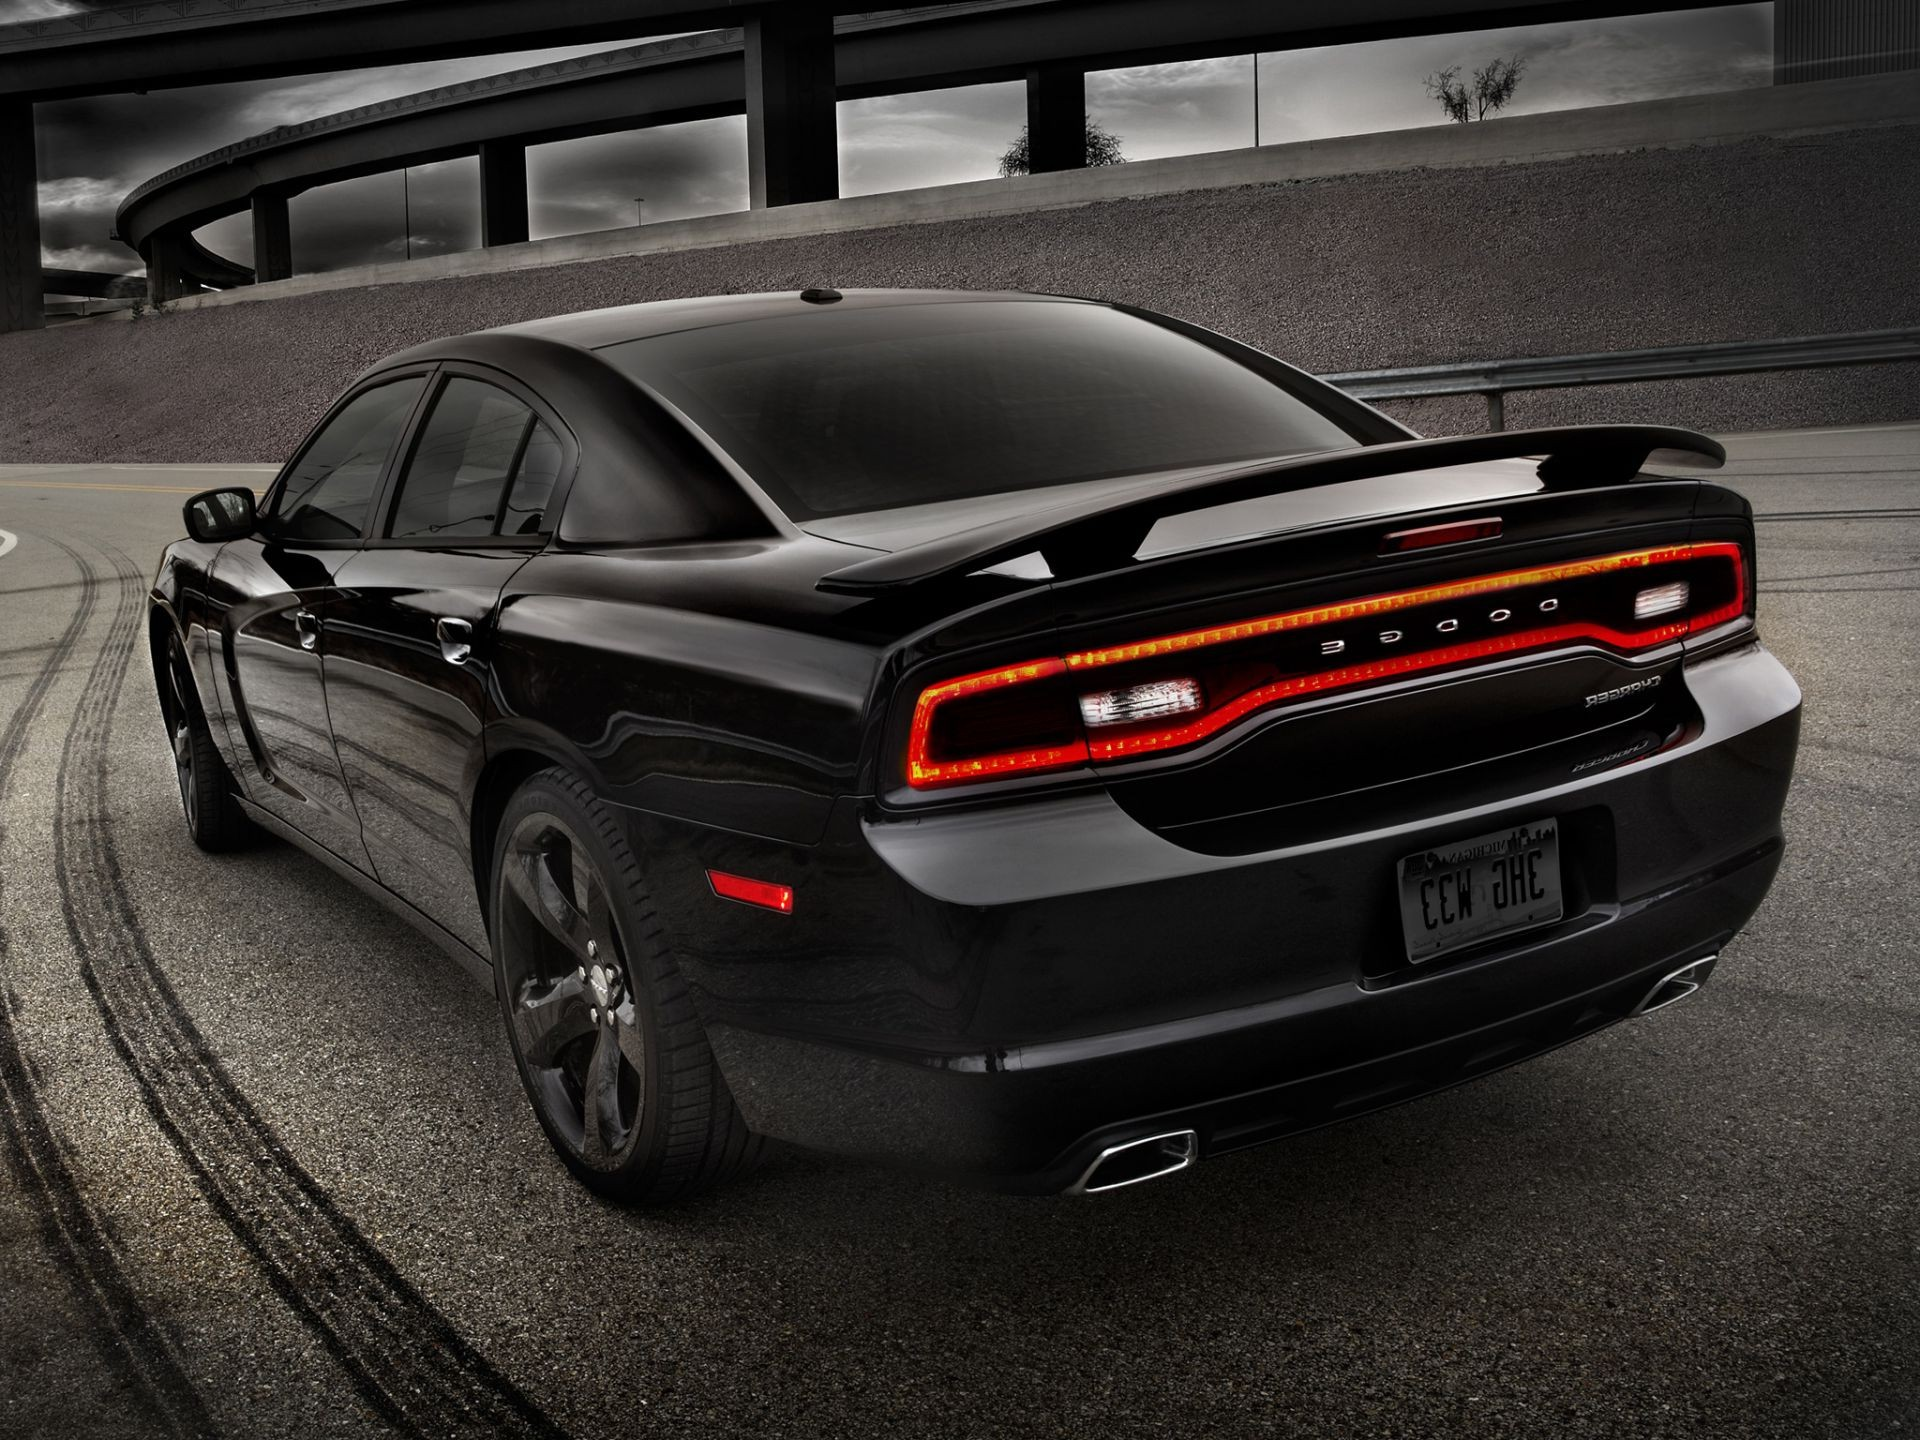 Charger Dodge Dodge Charger Blacktop 2012 Phone Wallpapers